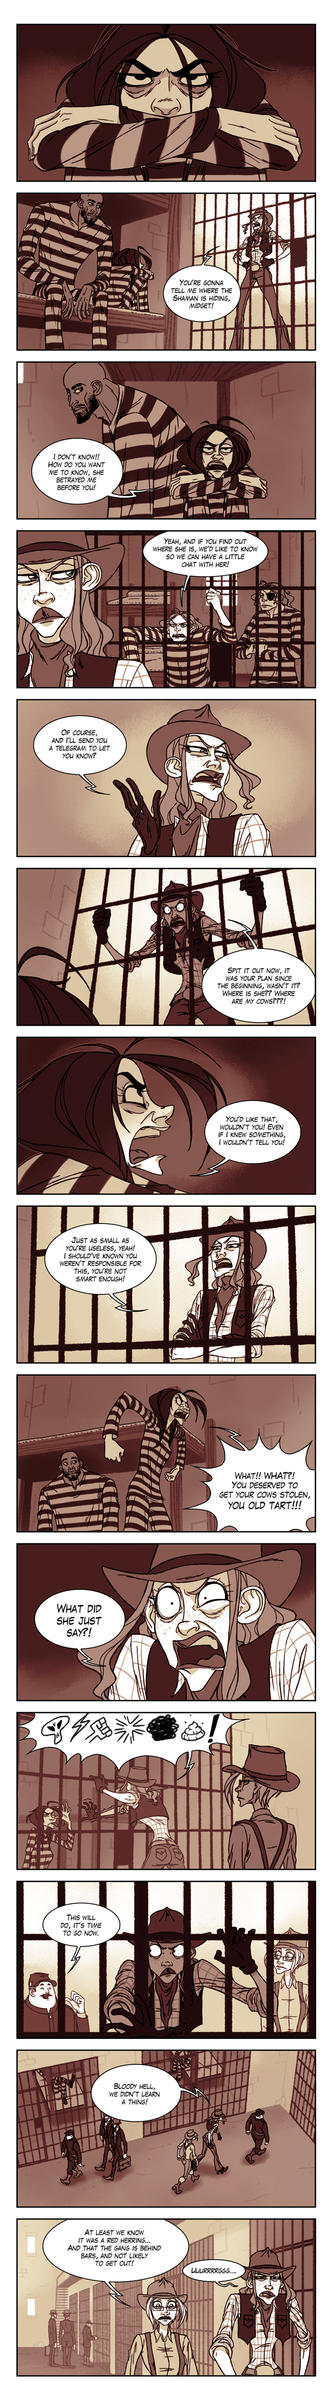 Jo strip 52 by JackPot-84